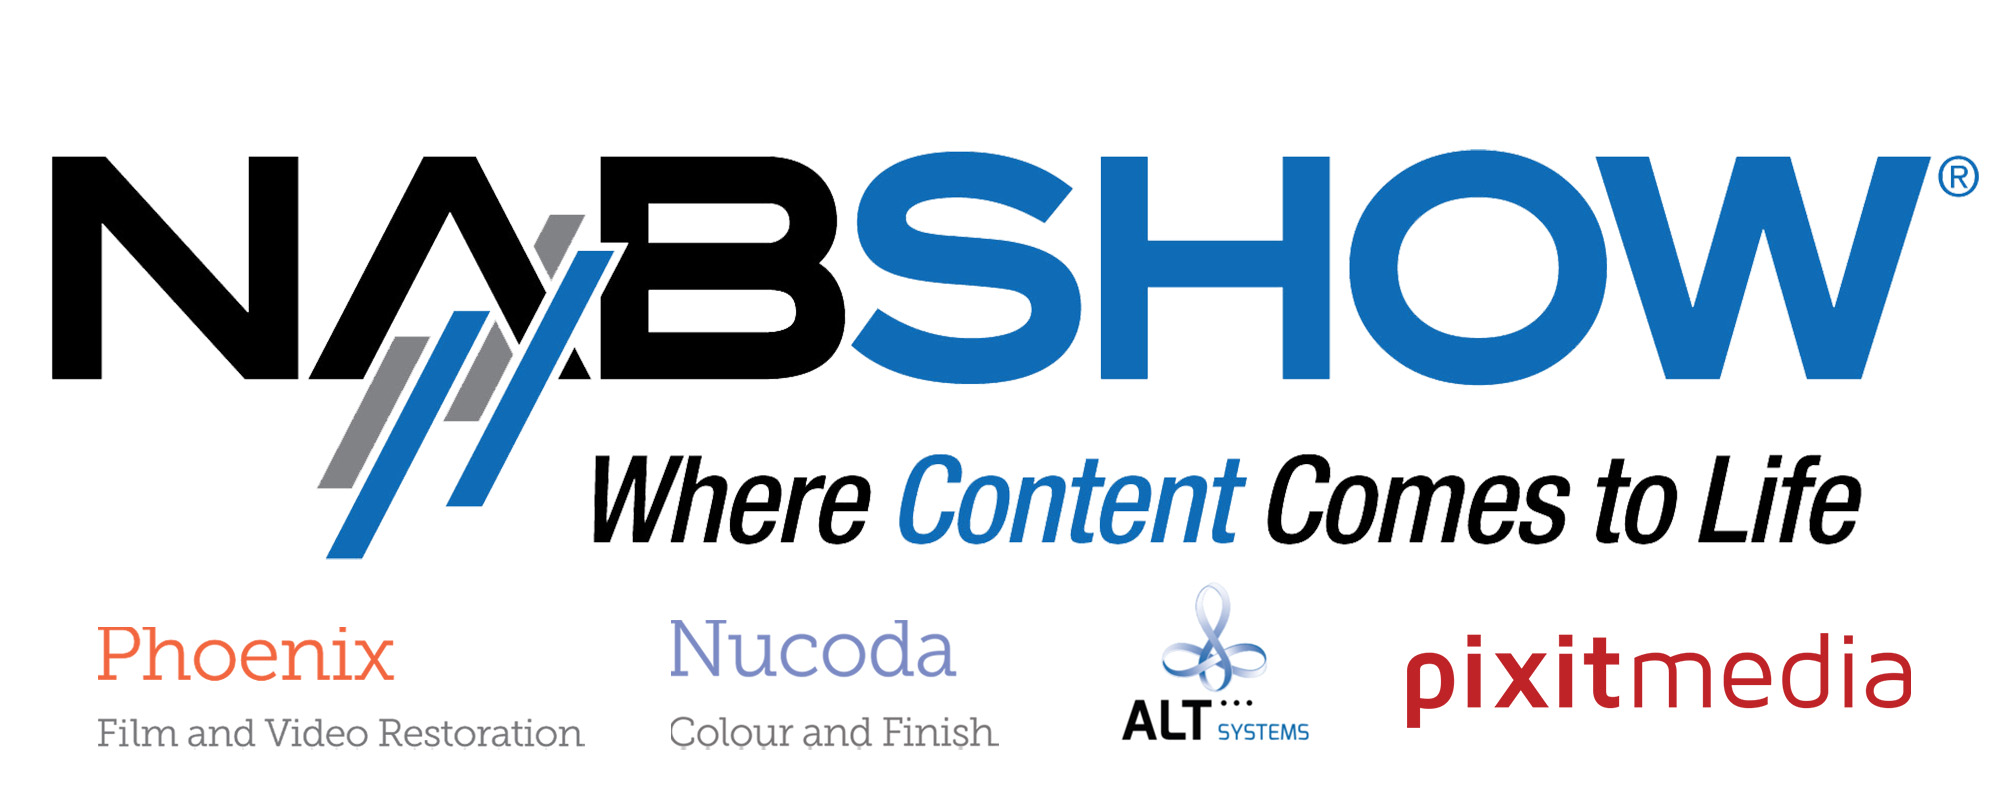 Nucoda and Phoenix at NAB 2019